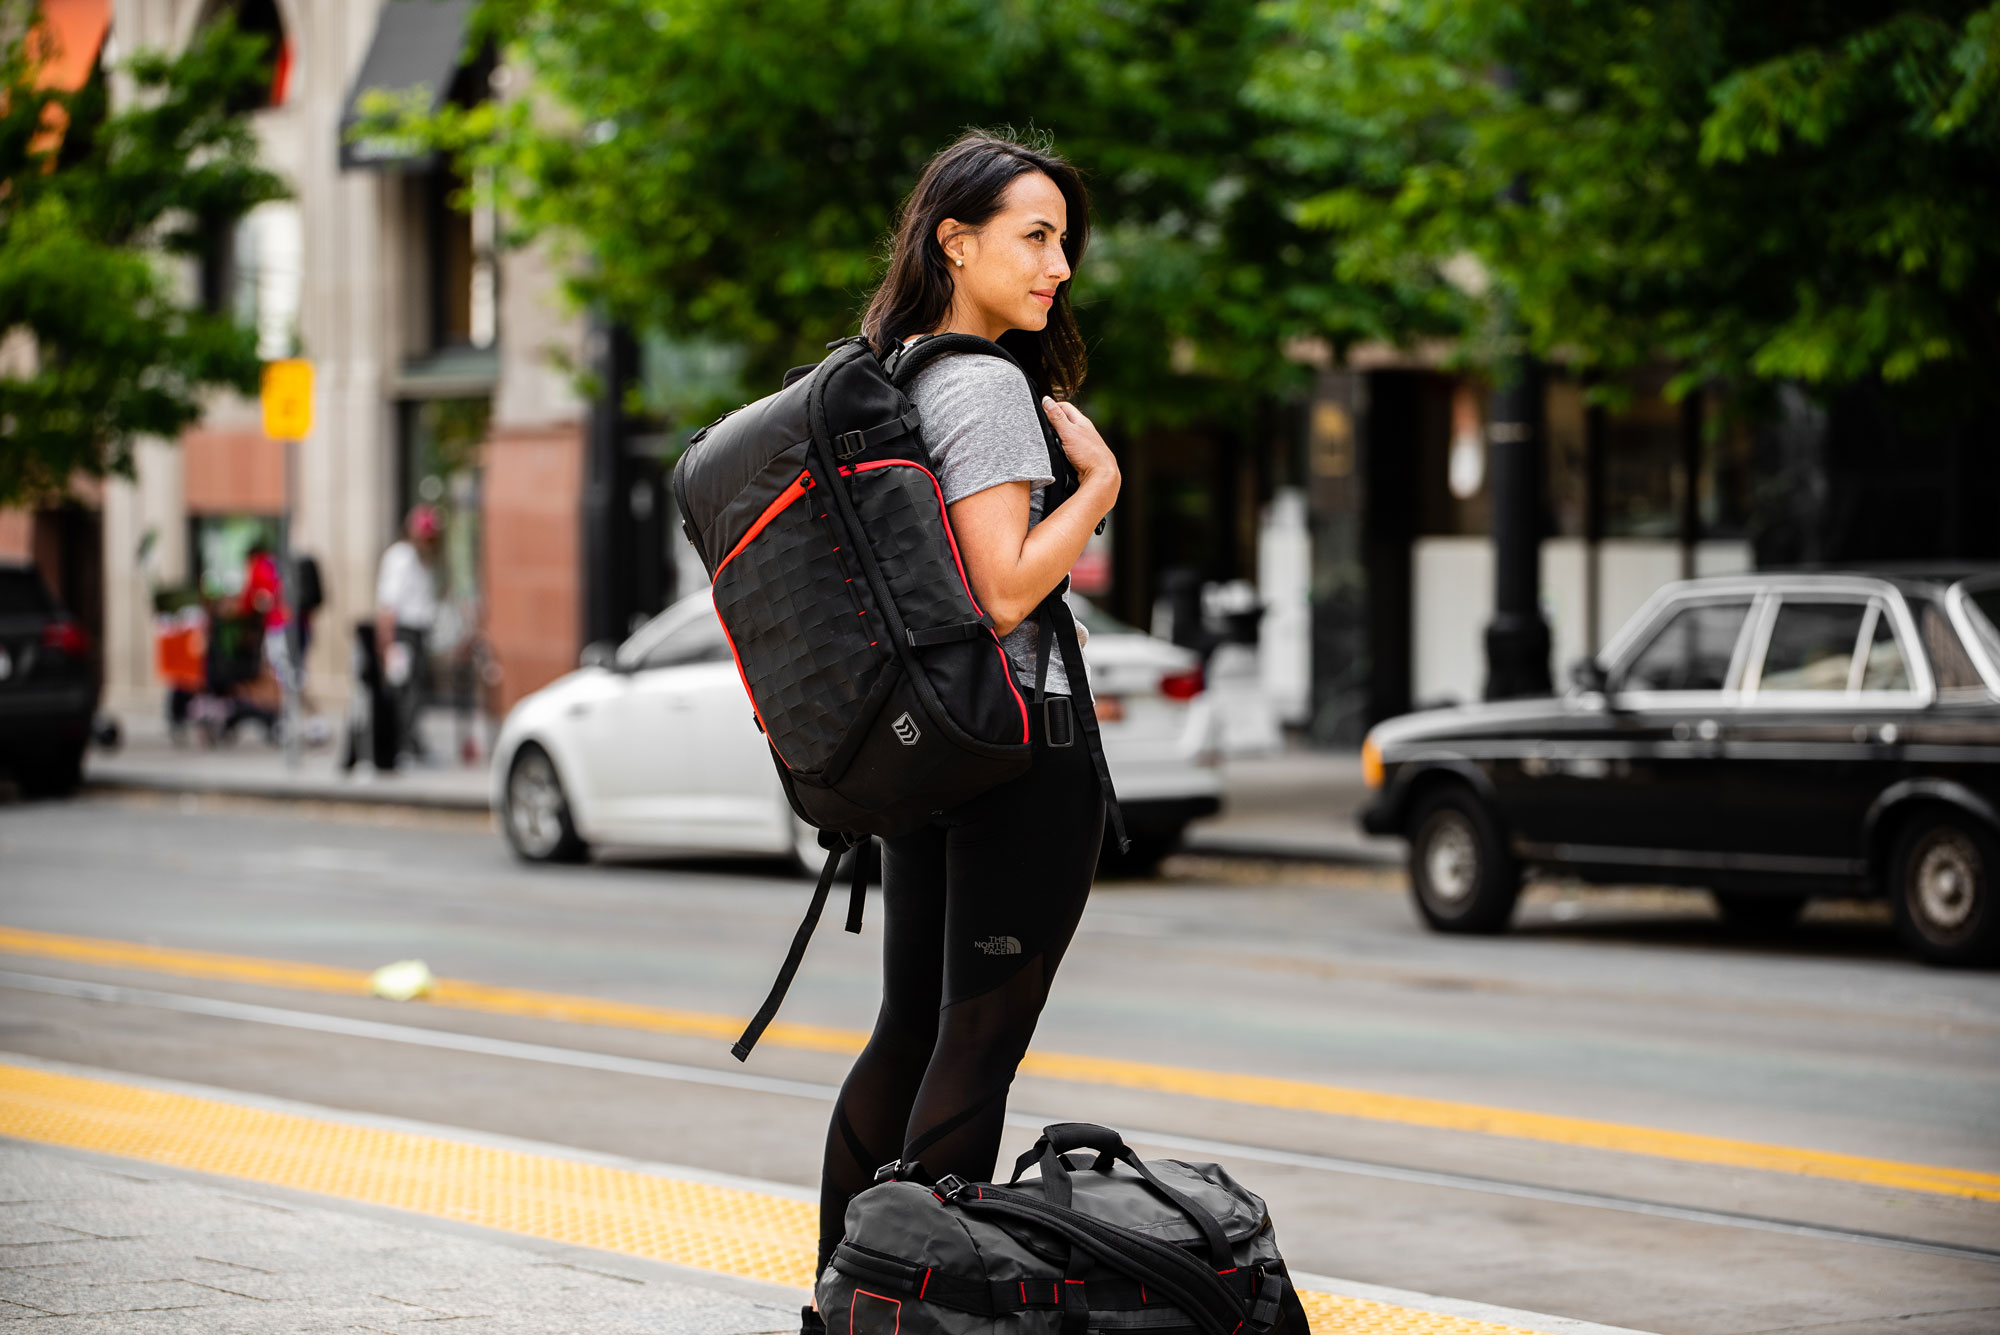 Does a tactical backpack belong in corporate America?